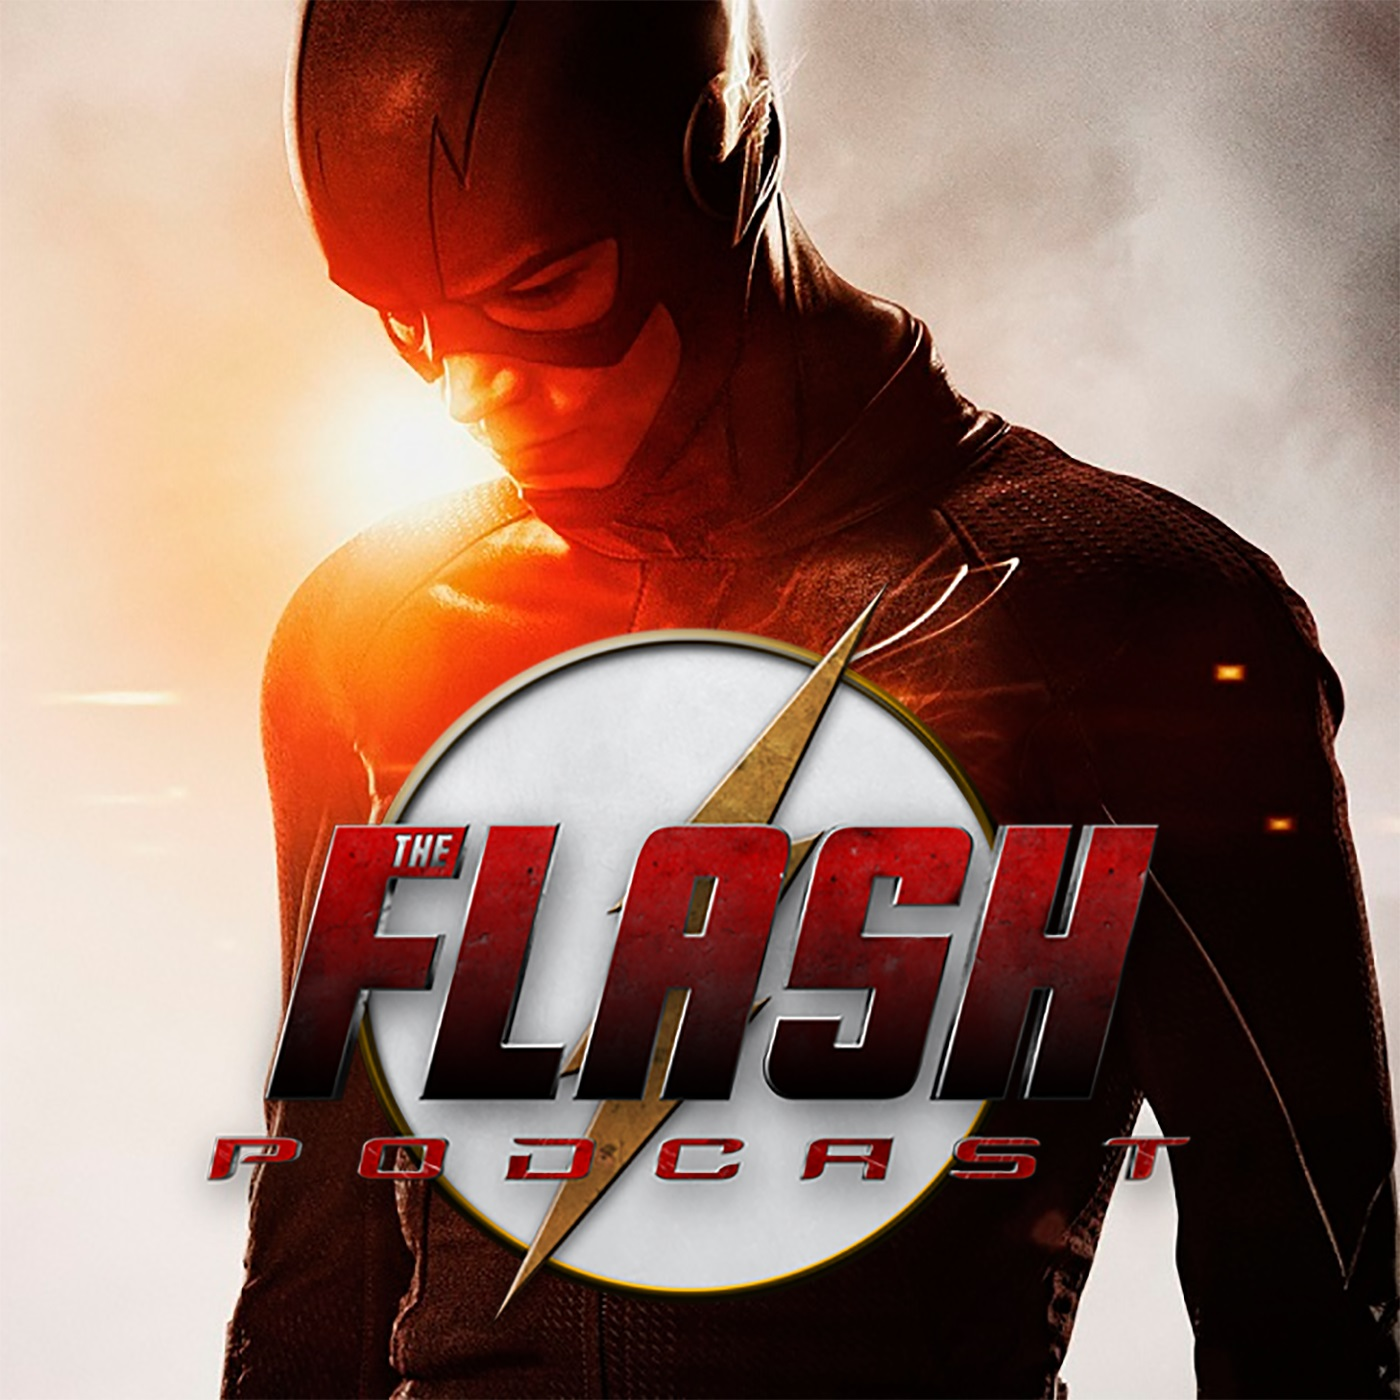 The Flash Podcast Season 2.5 - Episode 13: Justice League The Flashpoint Paradox